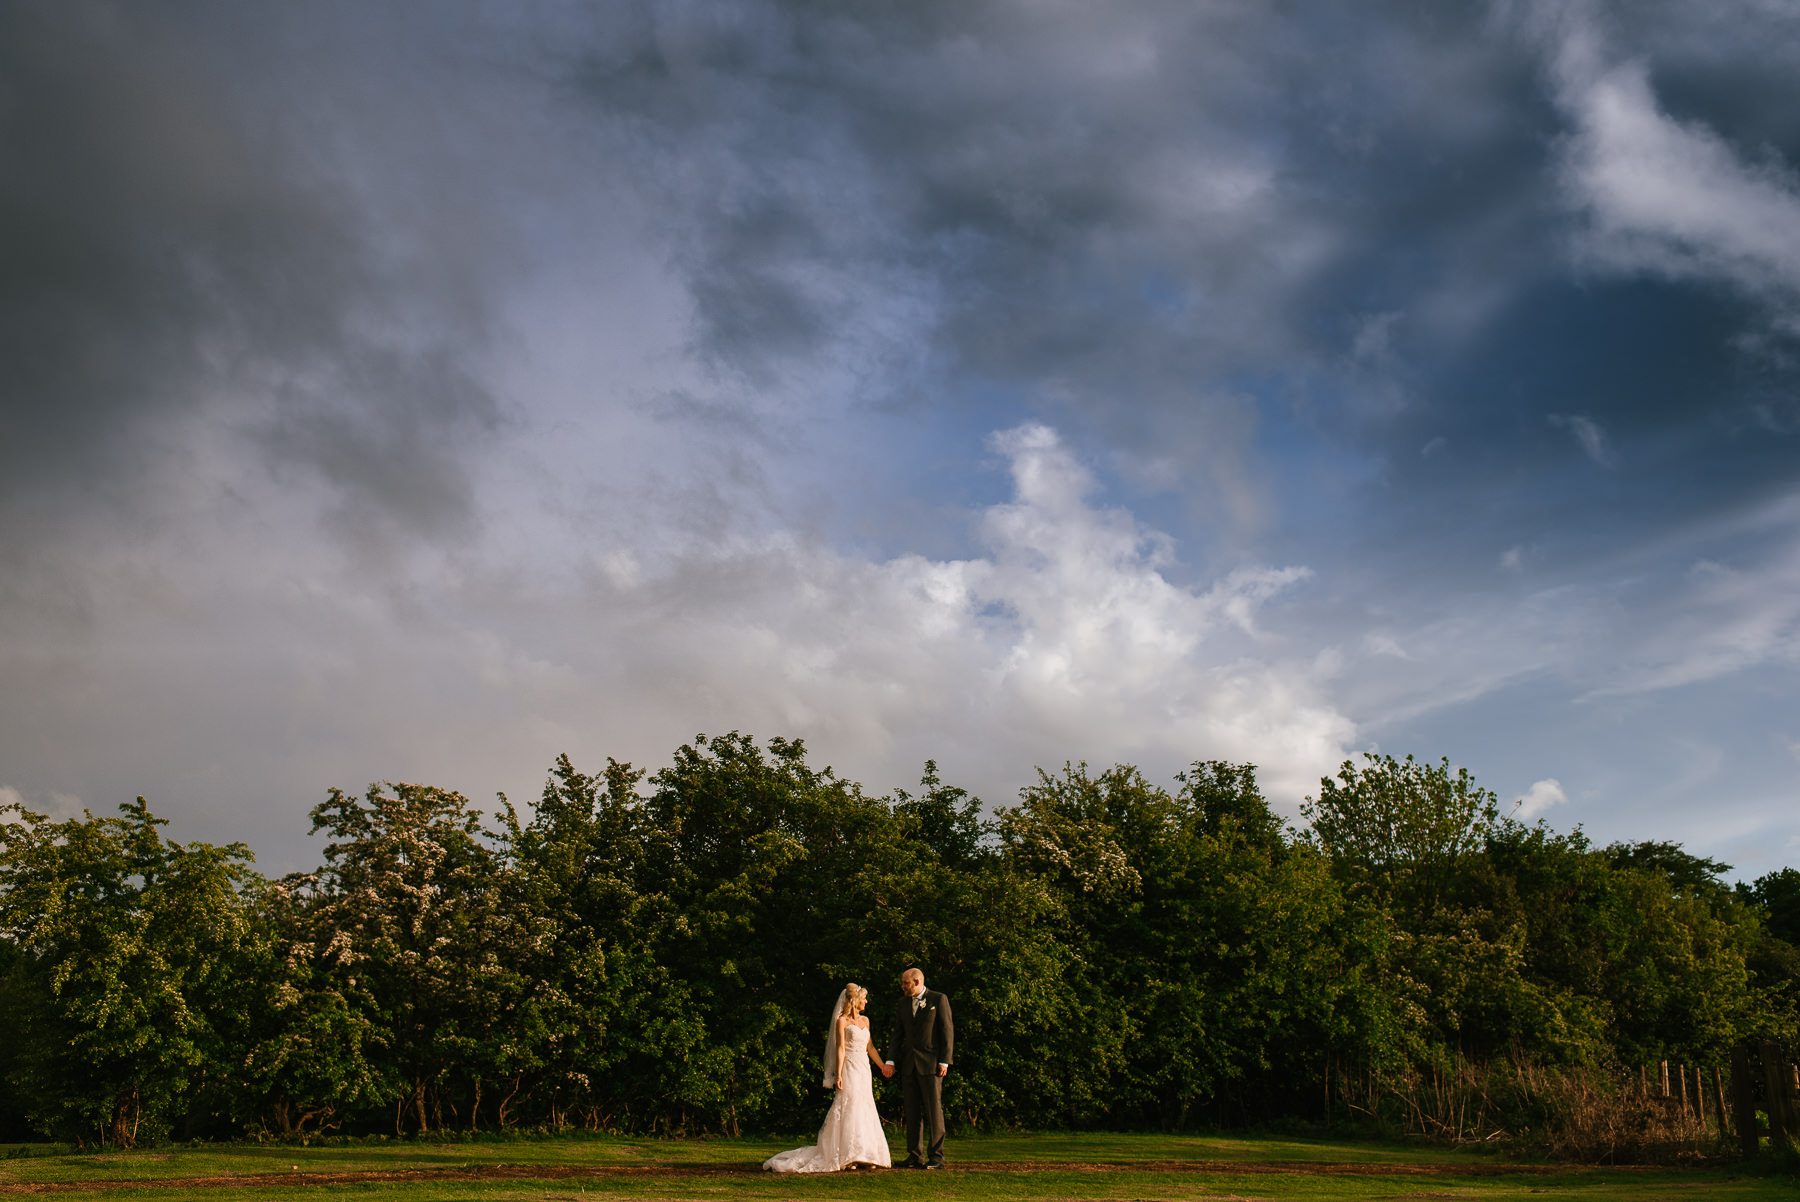 Wedding Photo at Stanley House in Mellor by Tim Emmerton